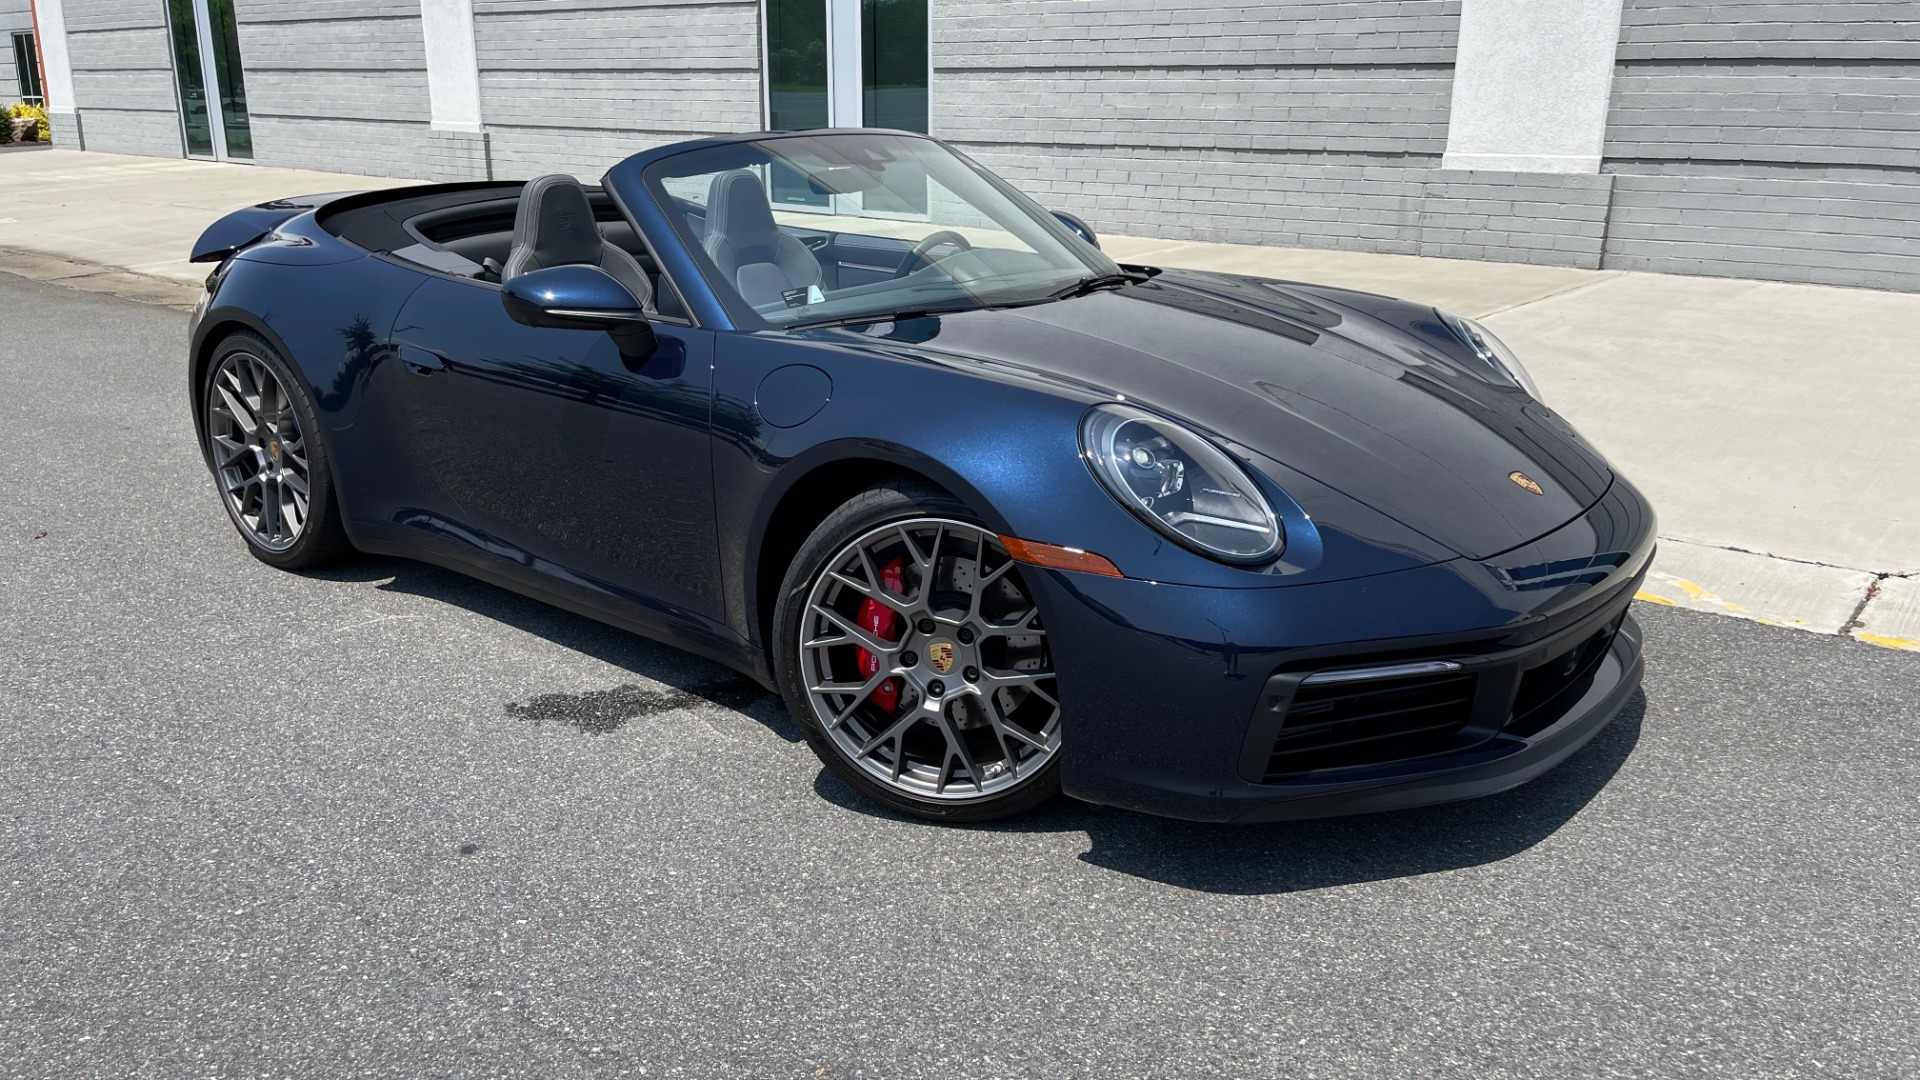 Used 2020 Porsche 911 CARRERA S CABRIOLET PREMIUM SPORT / LCA / ACC / BOSE / REARVIEW for sale $159,995 at Formula Imports in Charlotte NC 28227 4